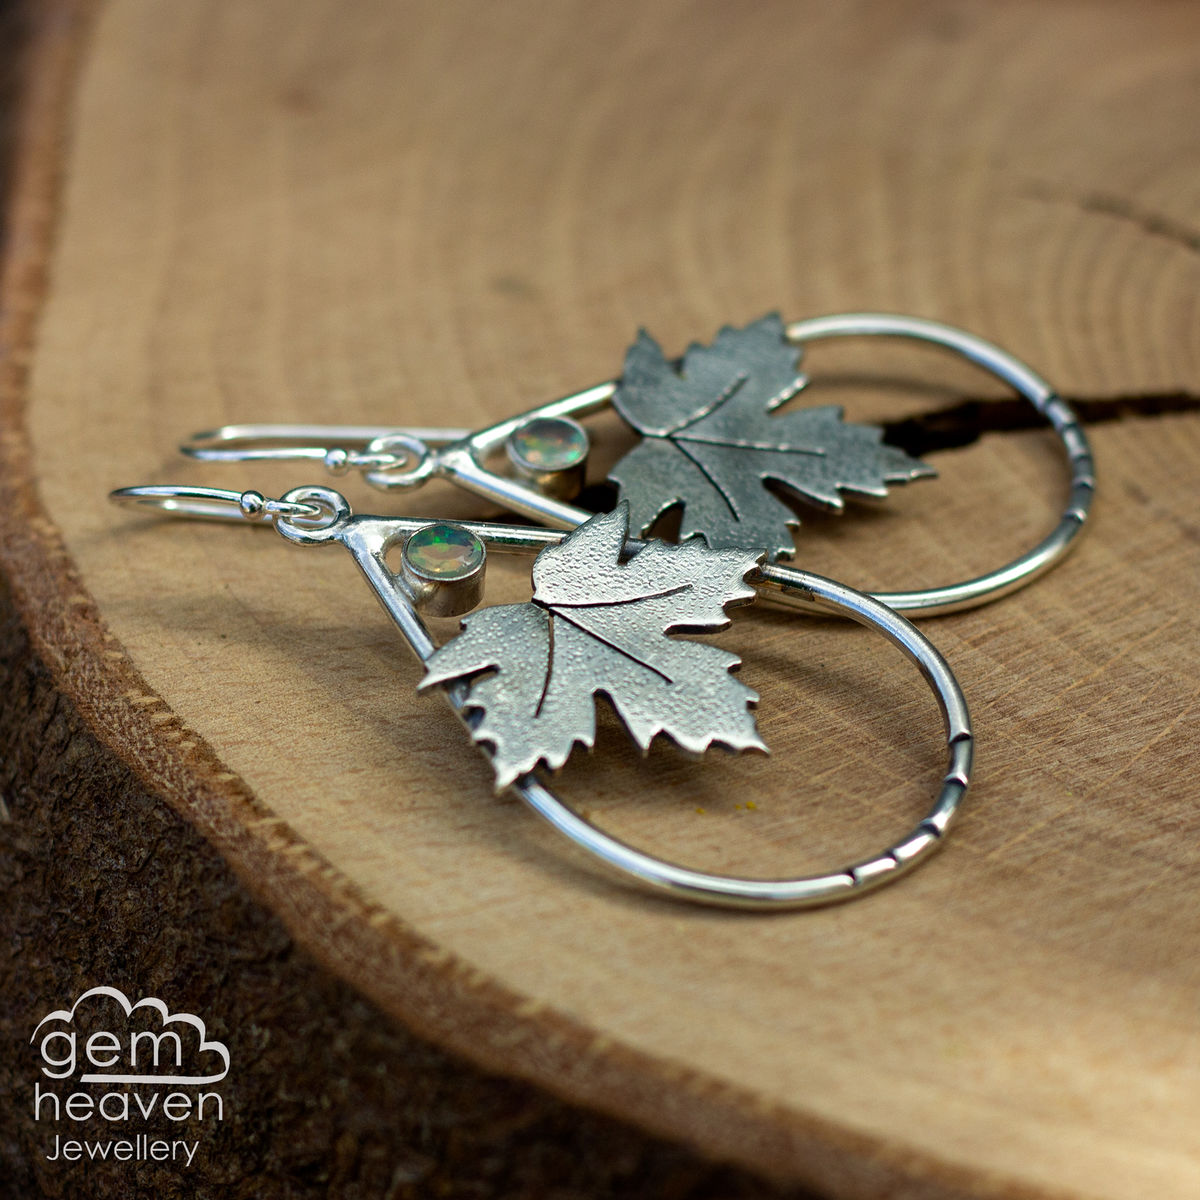 Clarity Earrings with Sycamore leaves - product images  of